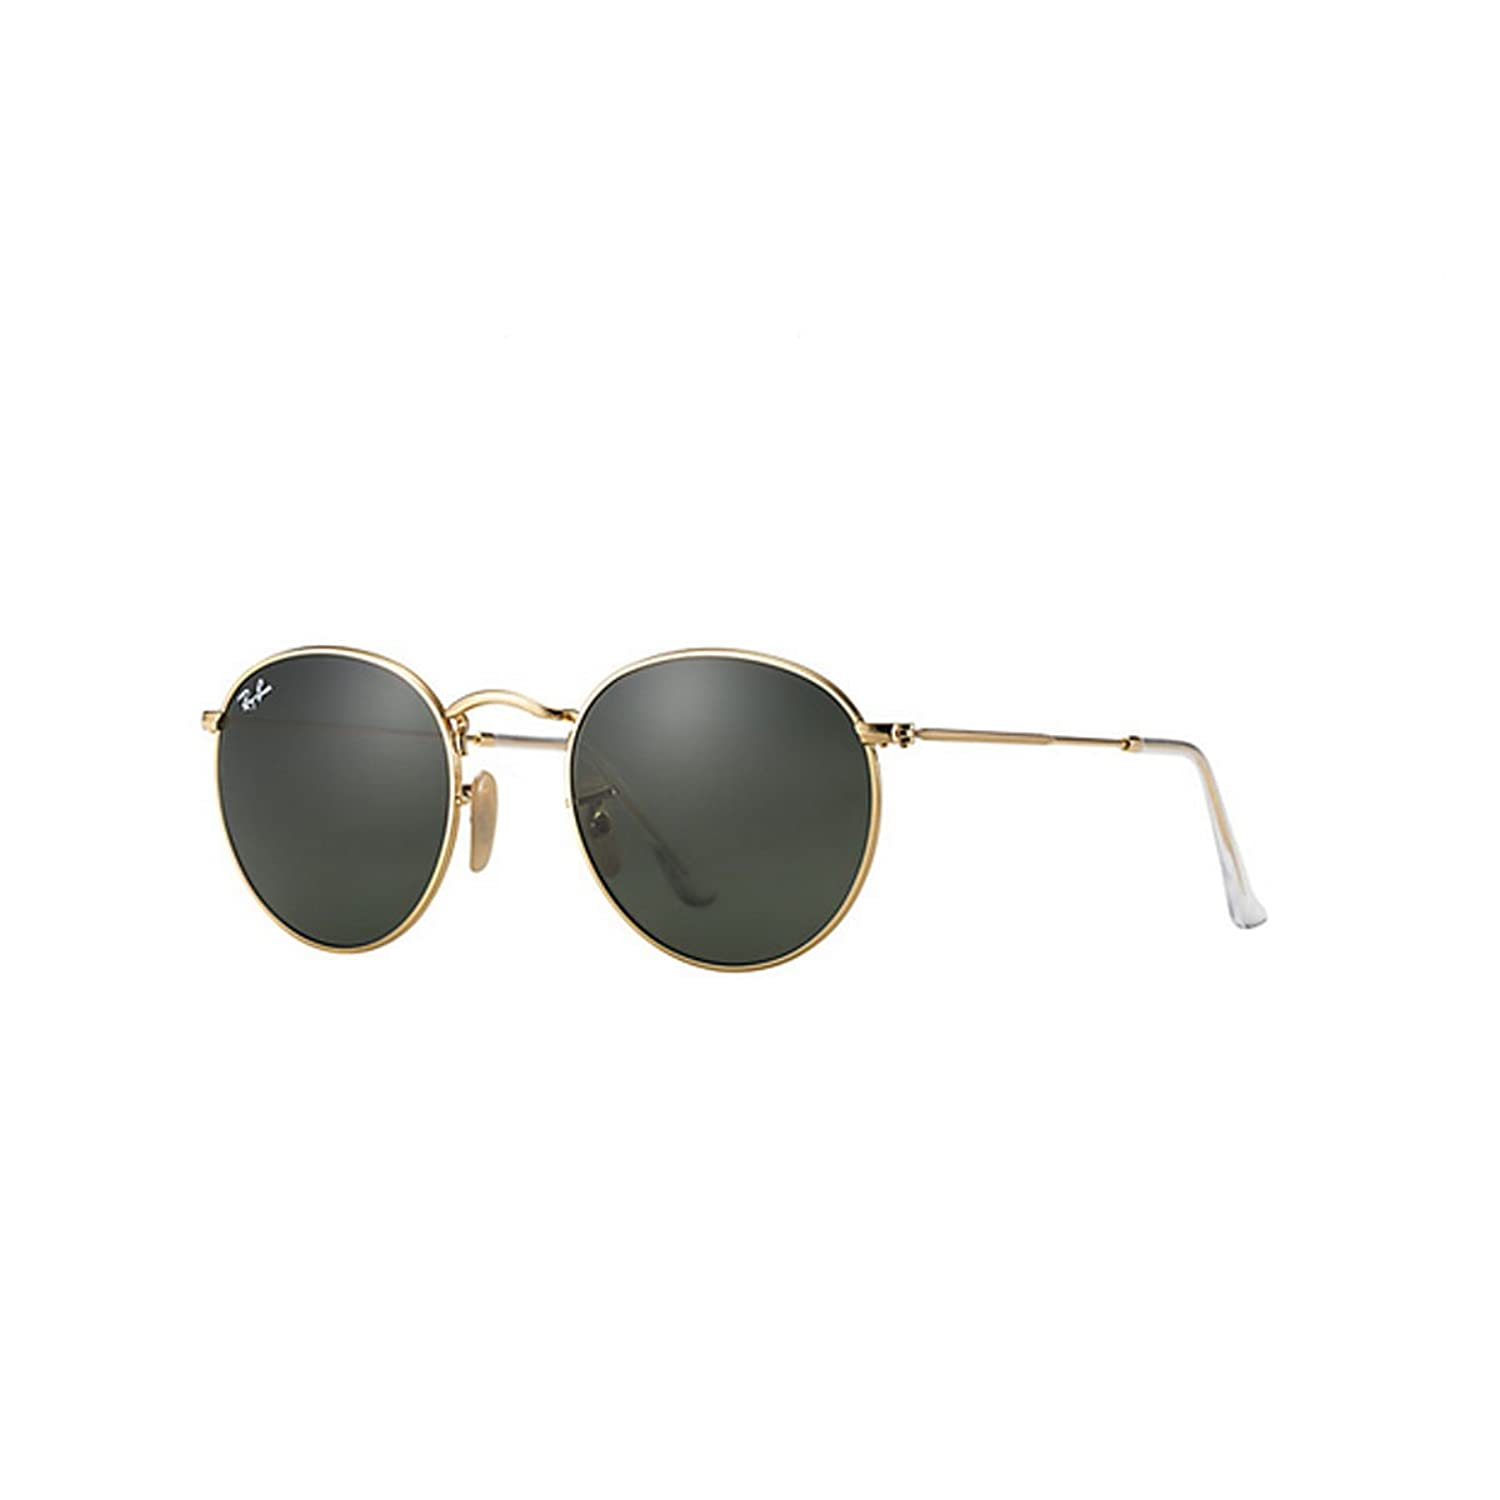 Amazon.com: Ray-Ban ROUND METAL - ARISTA Frame CRYSTAL GREEN Lenses 50mm Non-Polarized: Ray-Ban: Clothing